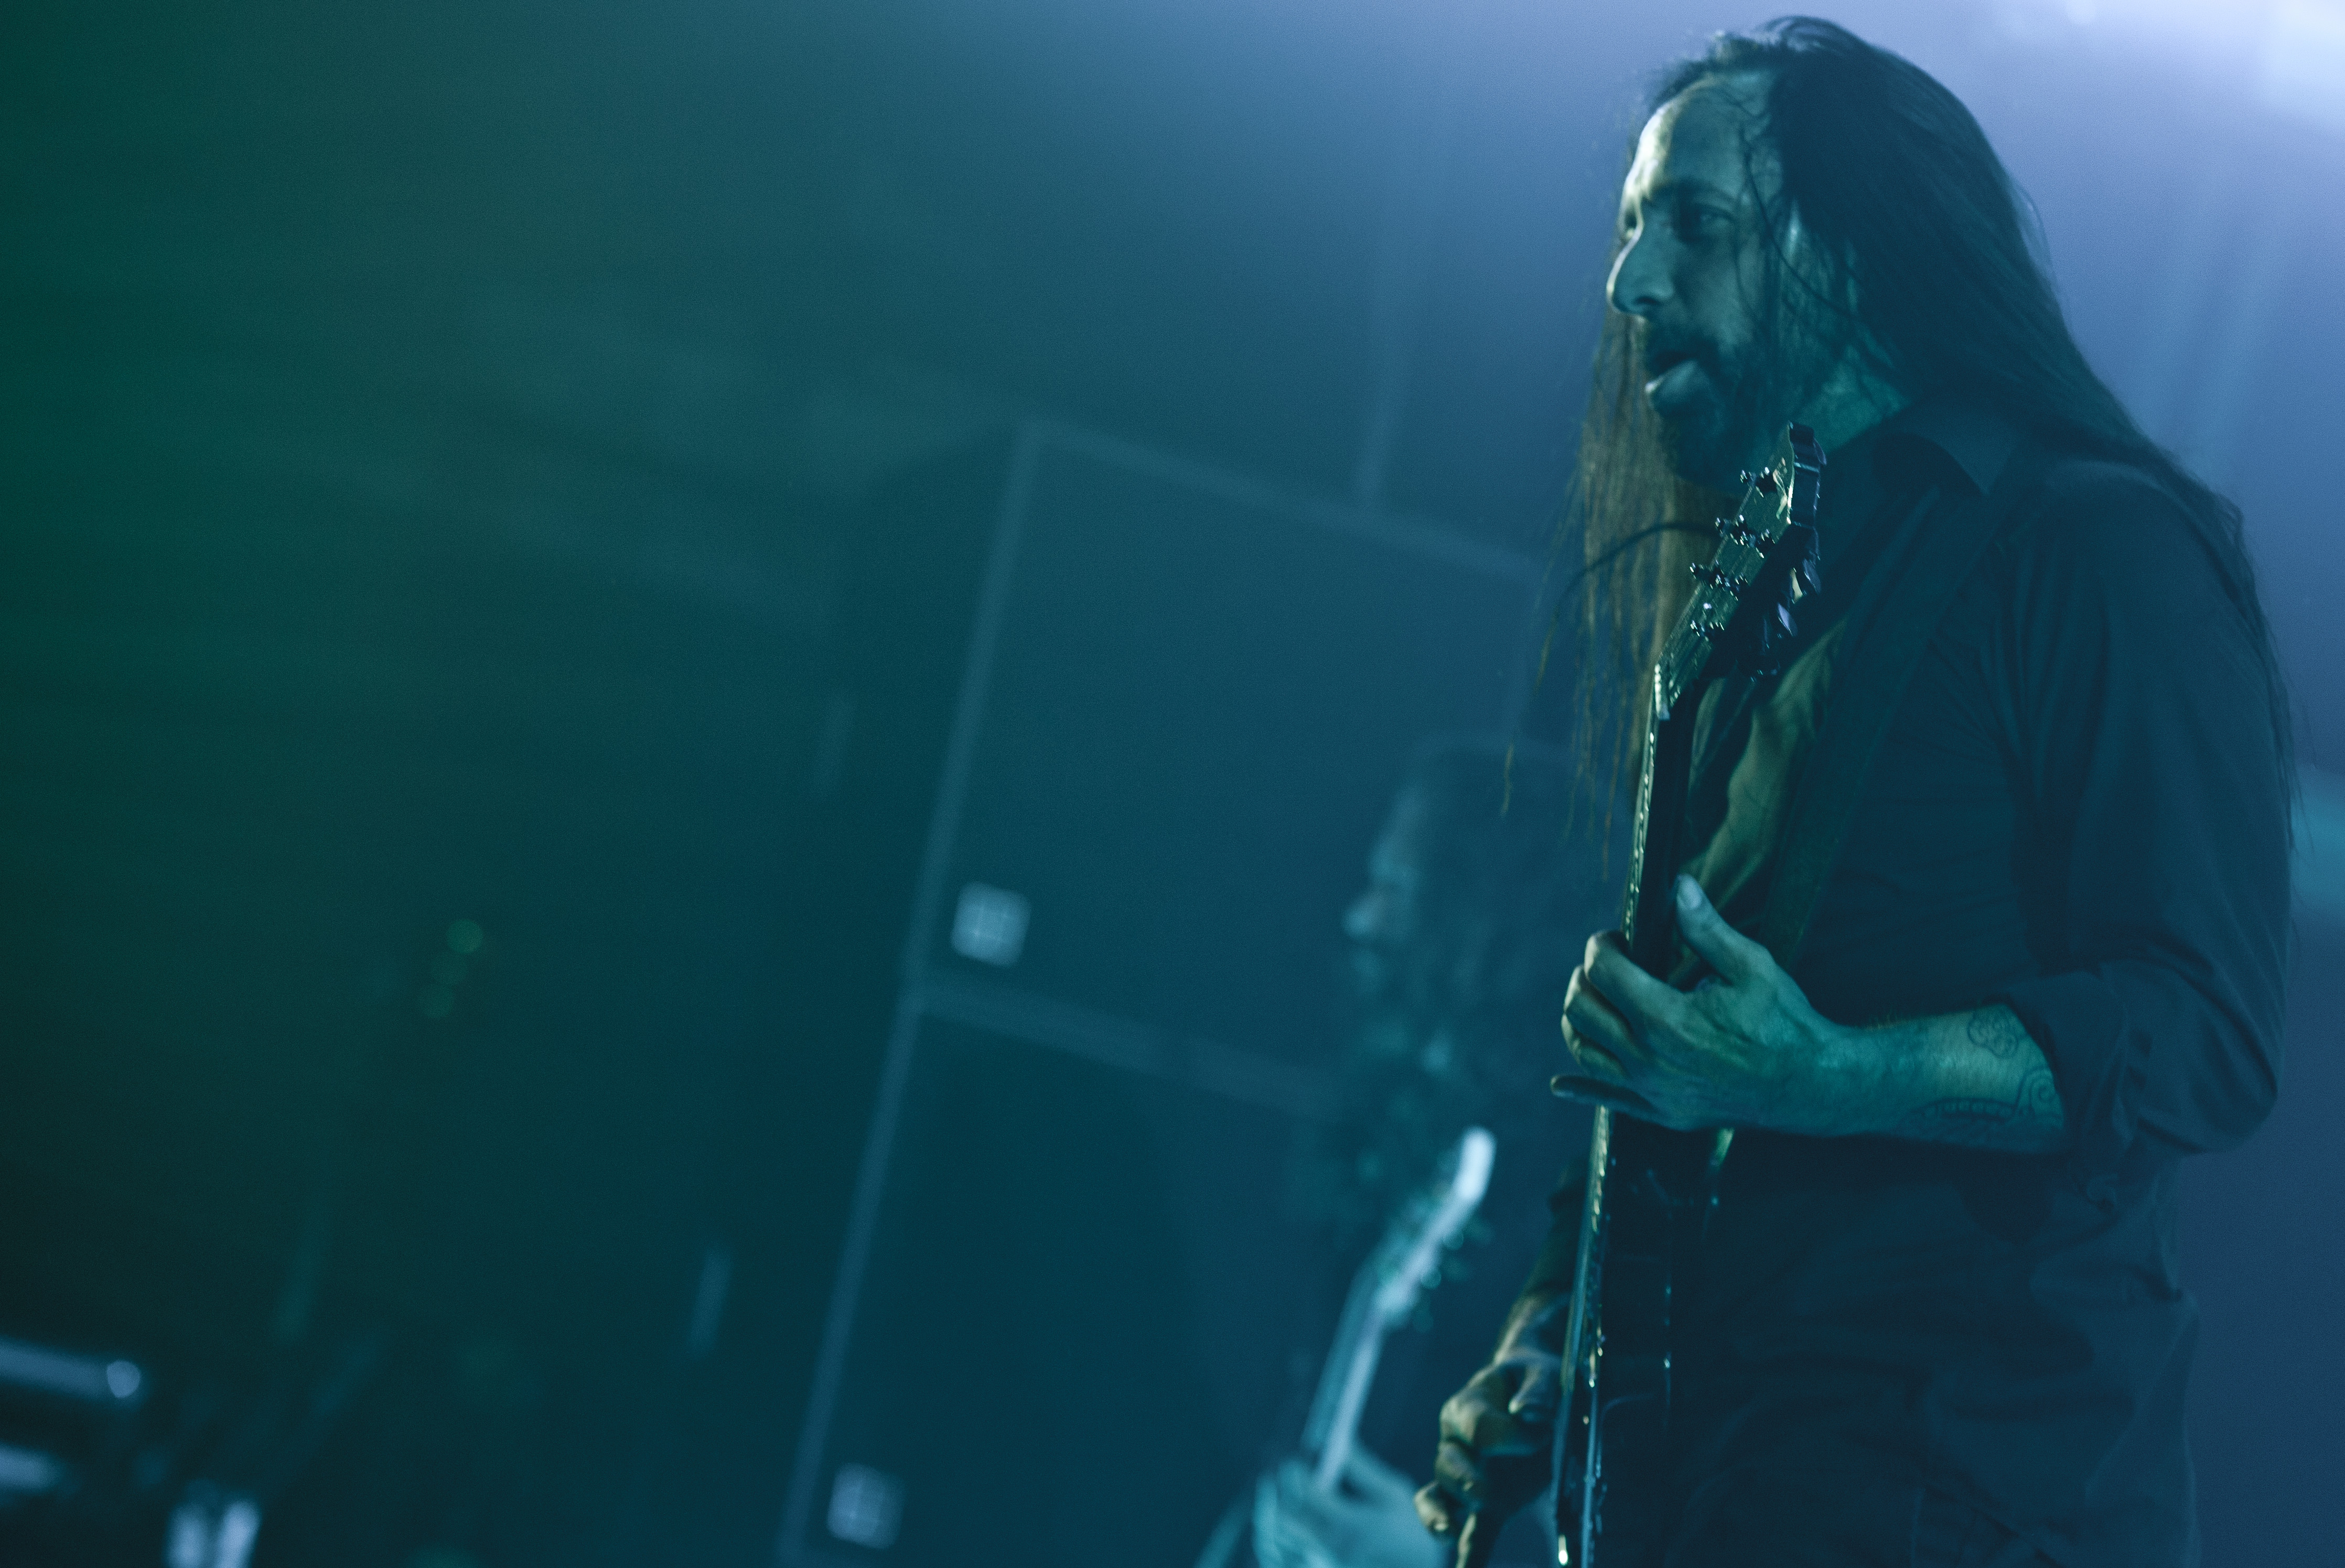 in_flames_sounds_of_a_playground_fading_tour_2011_muenchen_8_20111124_1353251990